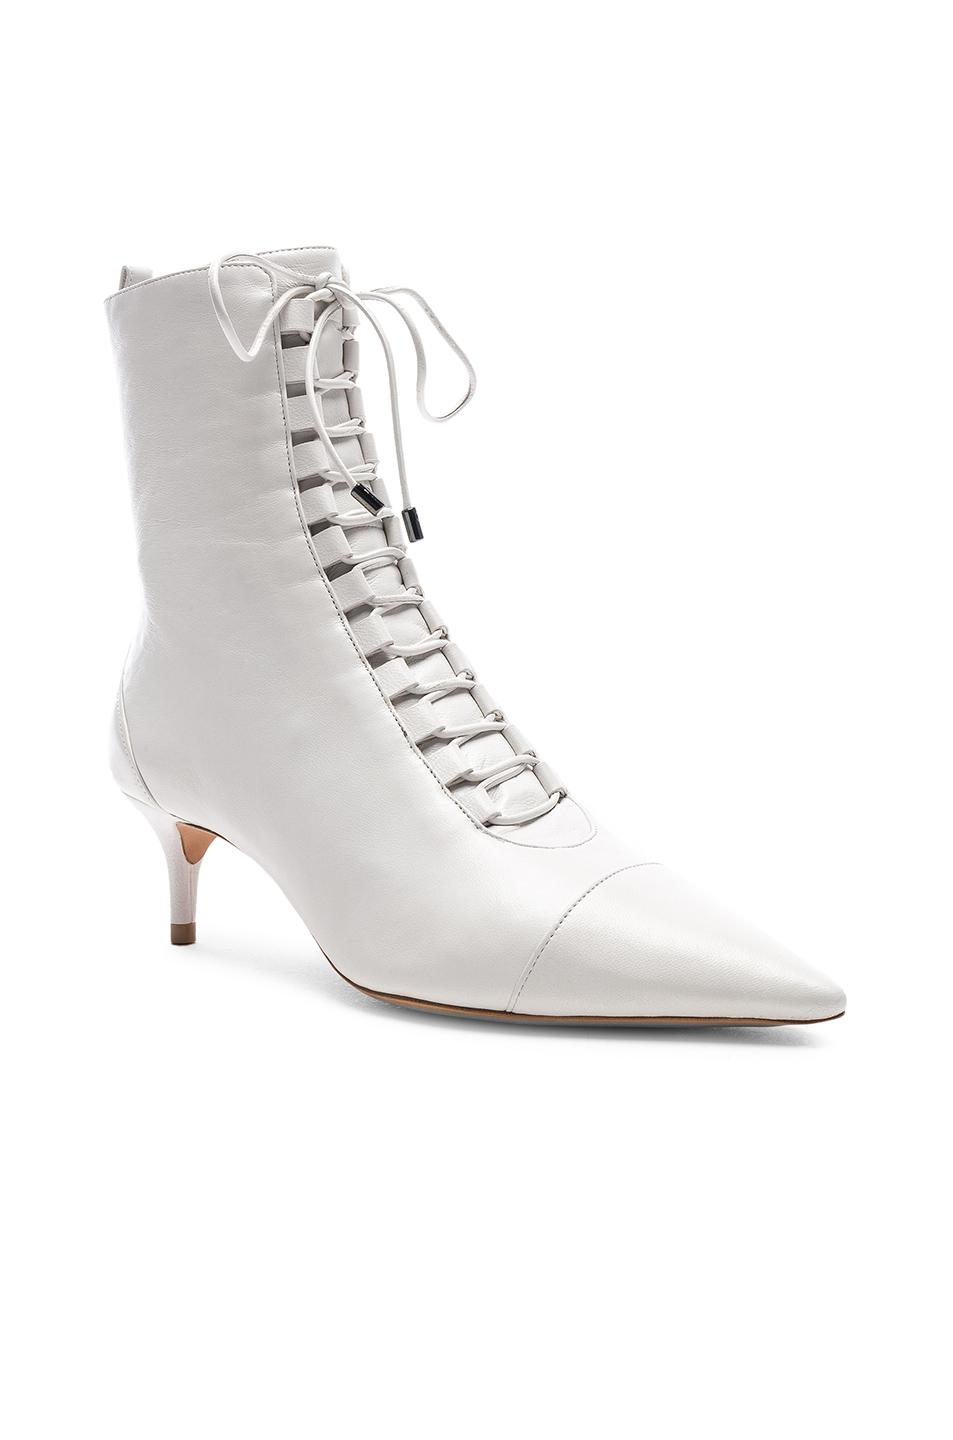 aa8617d2f0b6 Alexandre Birman - White Leather Millen Lace Up Ankle Boots - Lyst. View  fullscreen